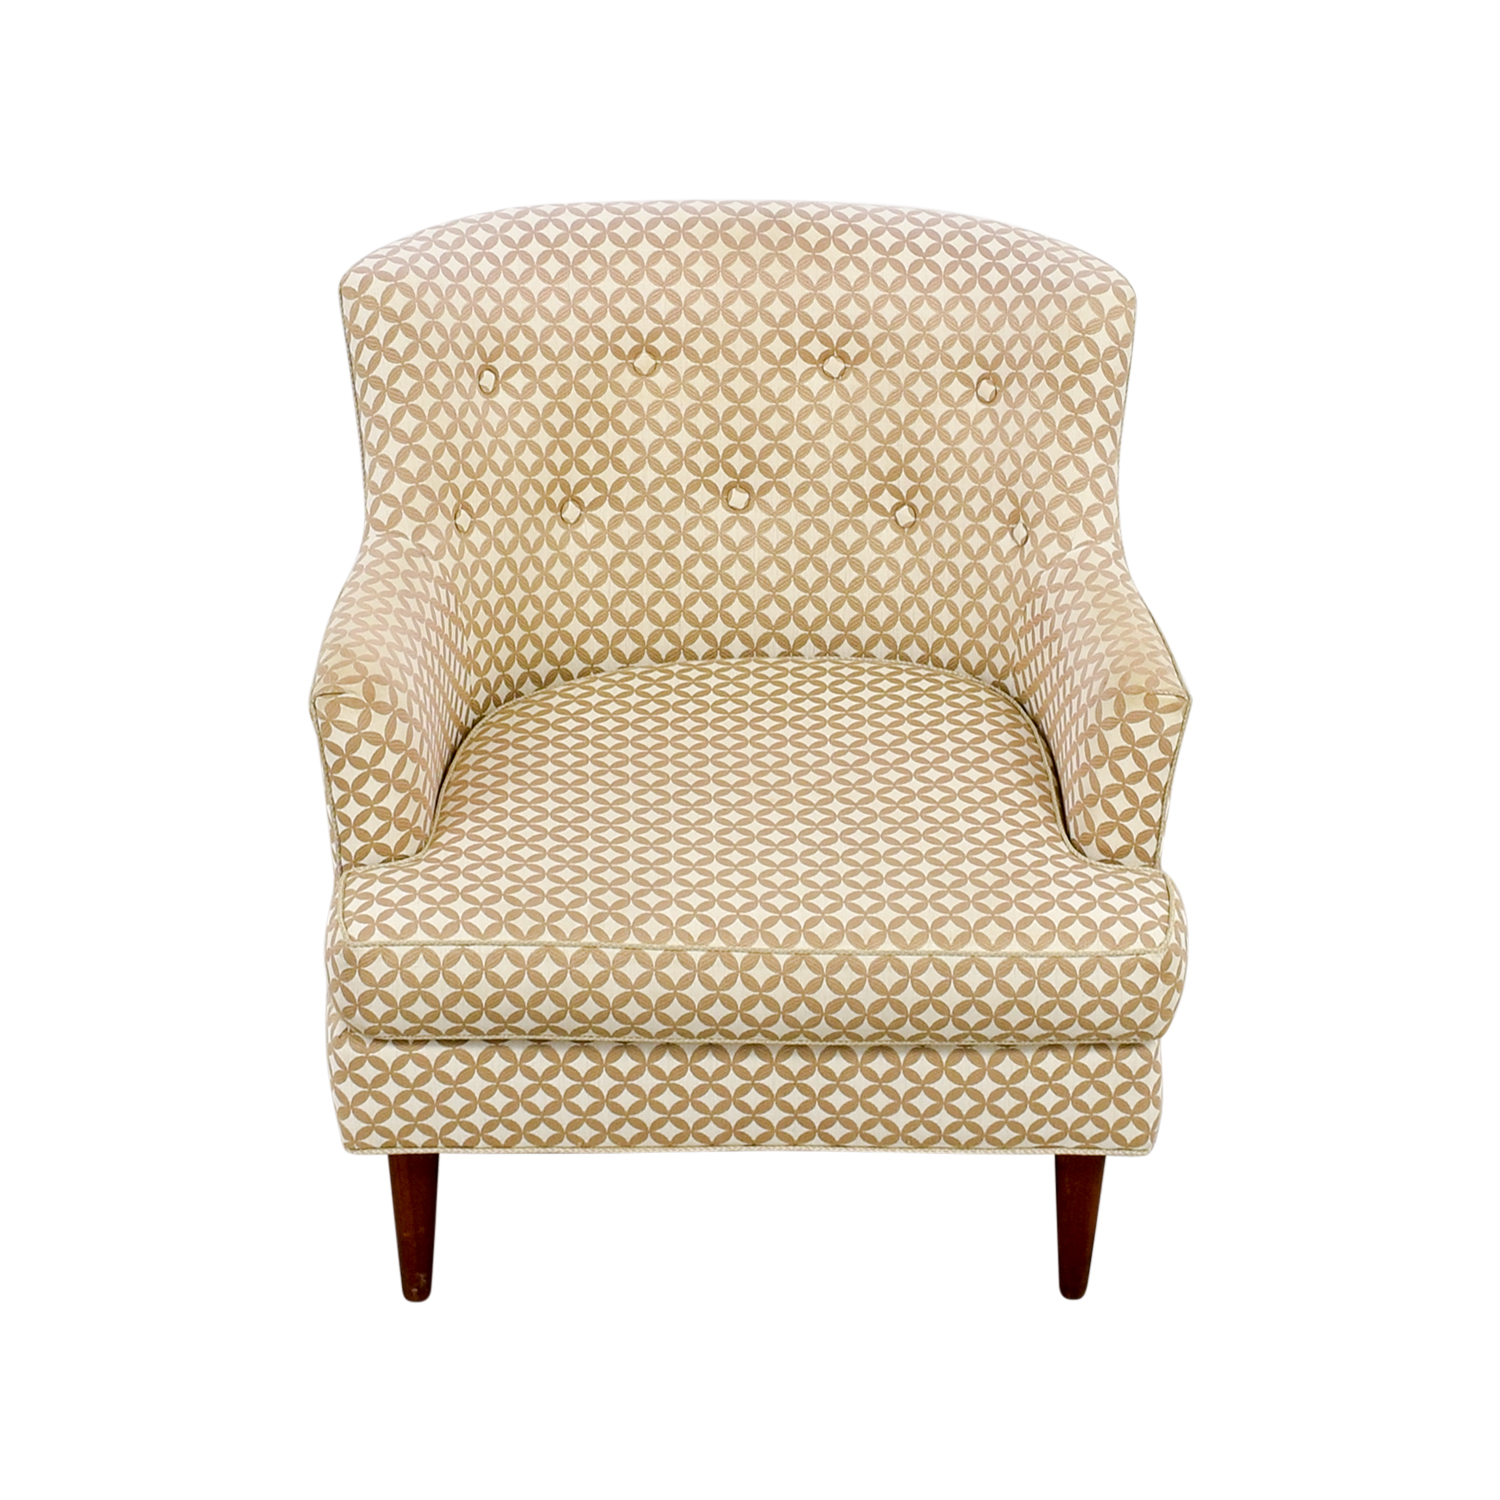 buy Diamond Tufted Chair online